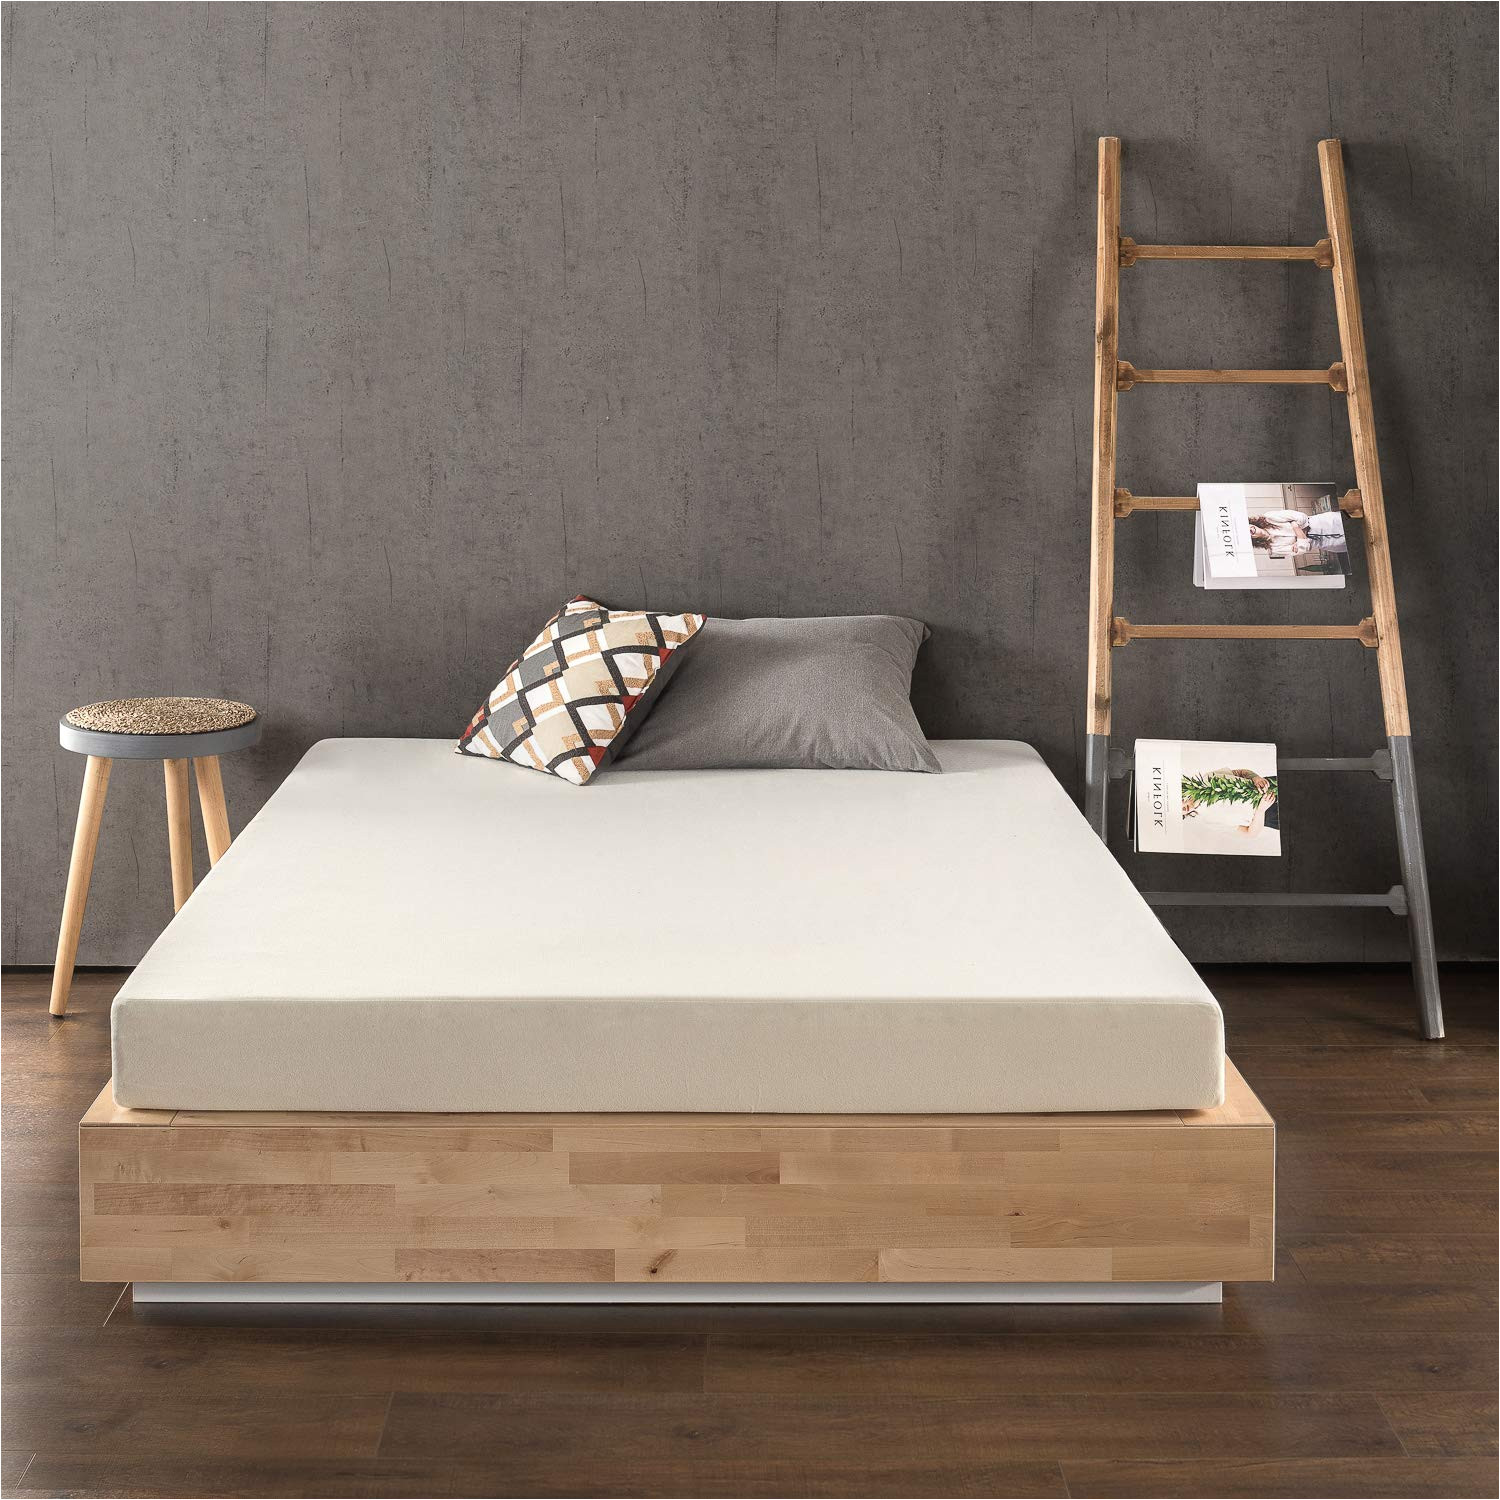 How Much Does A Tempur Pedic King Mattress Weigh Amazon Com Best Price Mattress 6 Inch Memory Foam Mattress Full